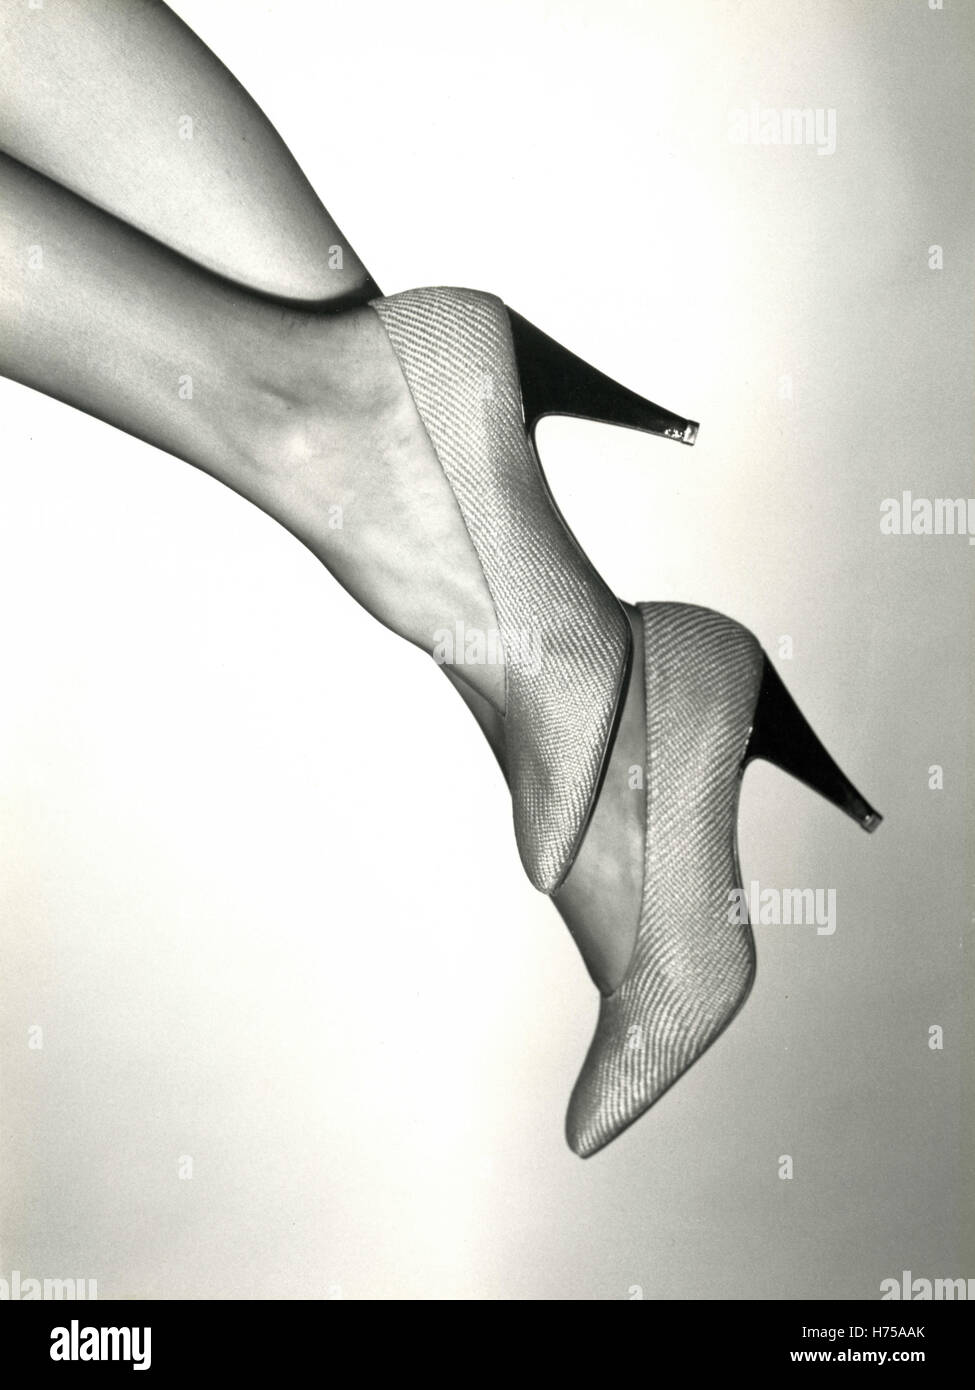 Shoes by Christian Dior, Paris, France 1987 - Stock Image